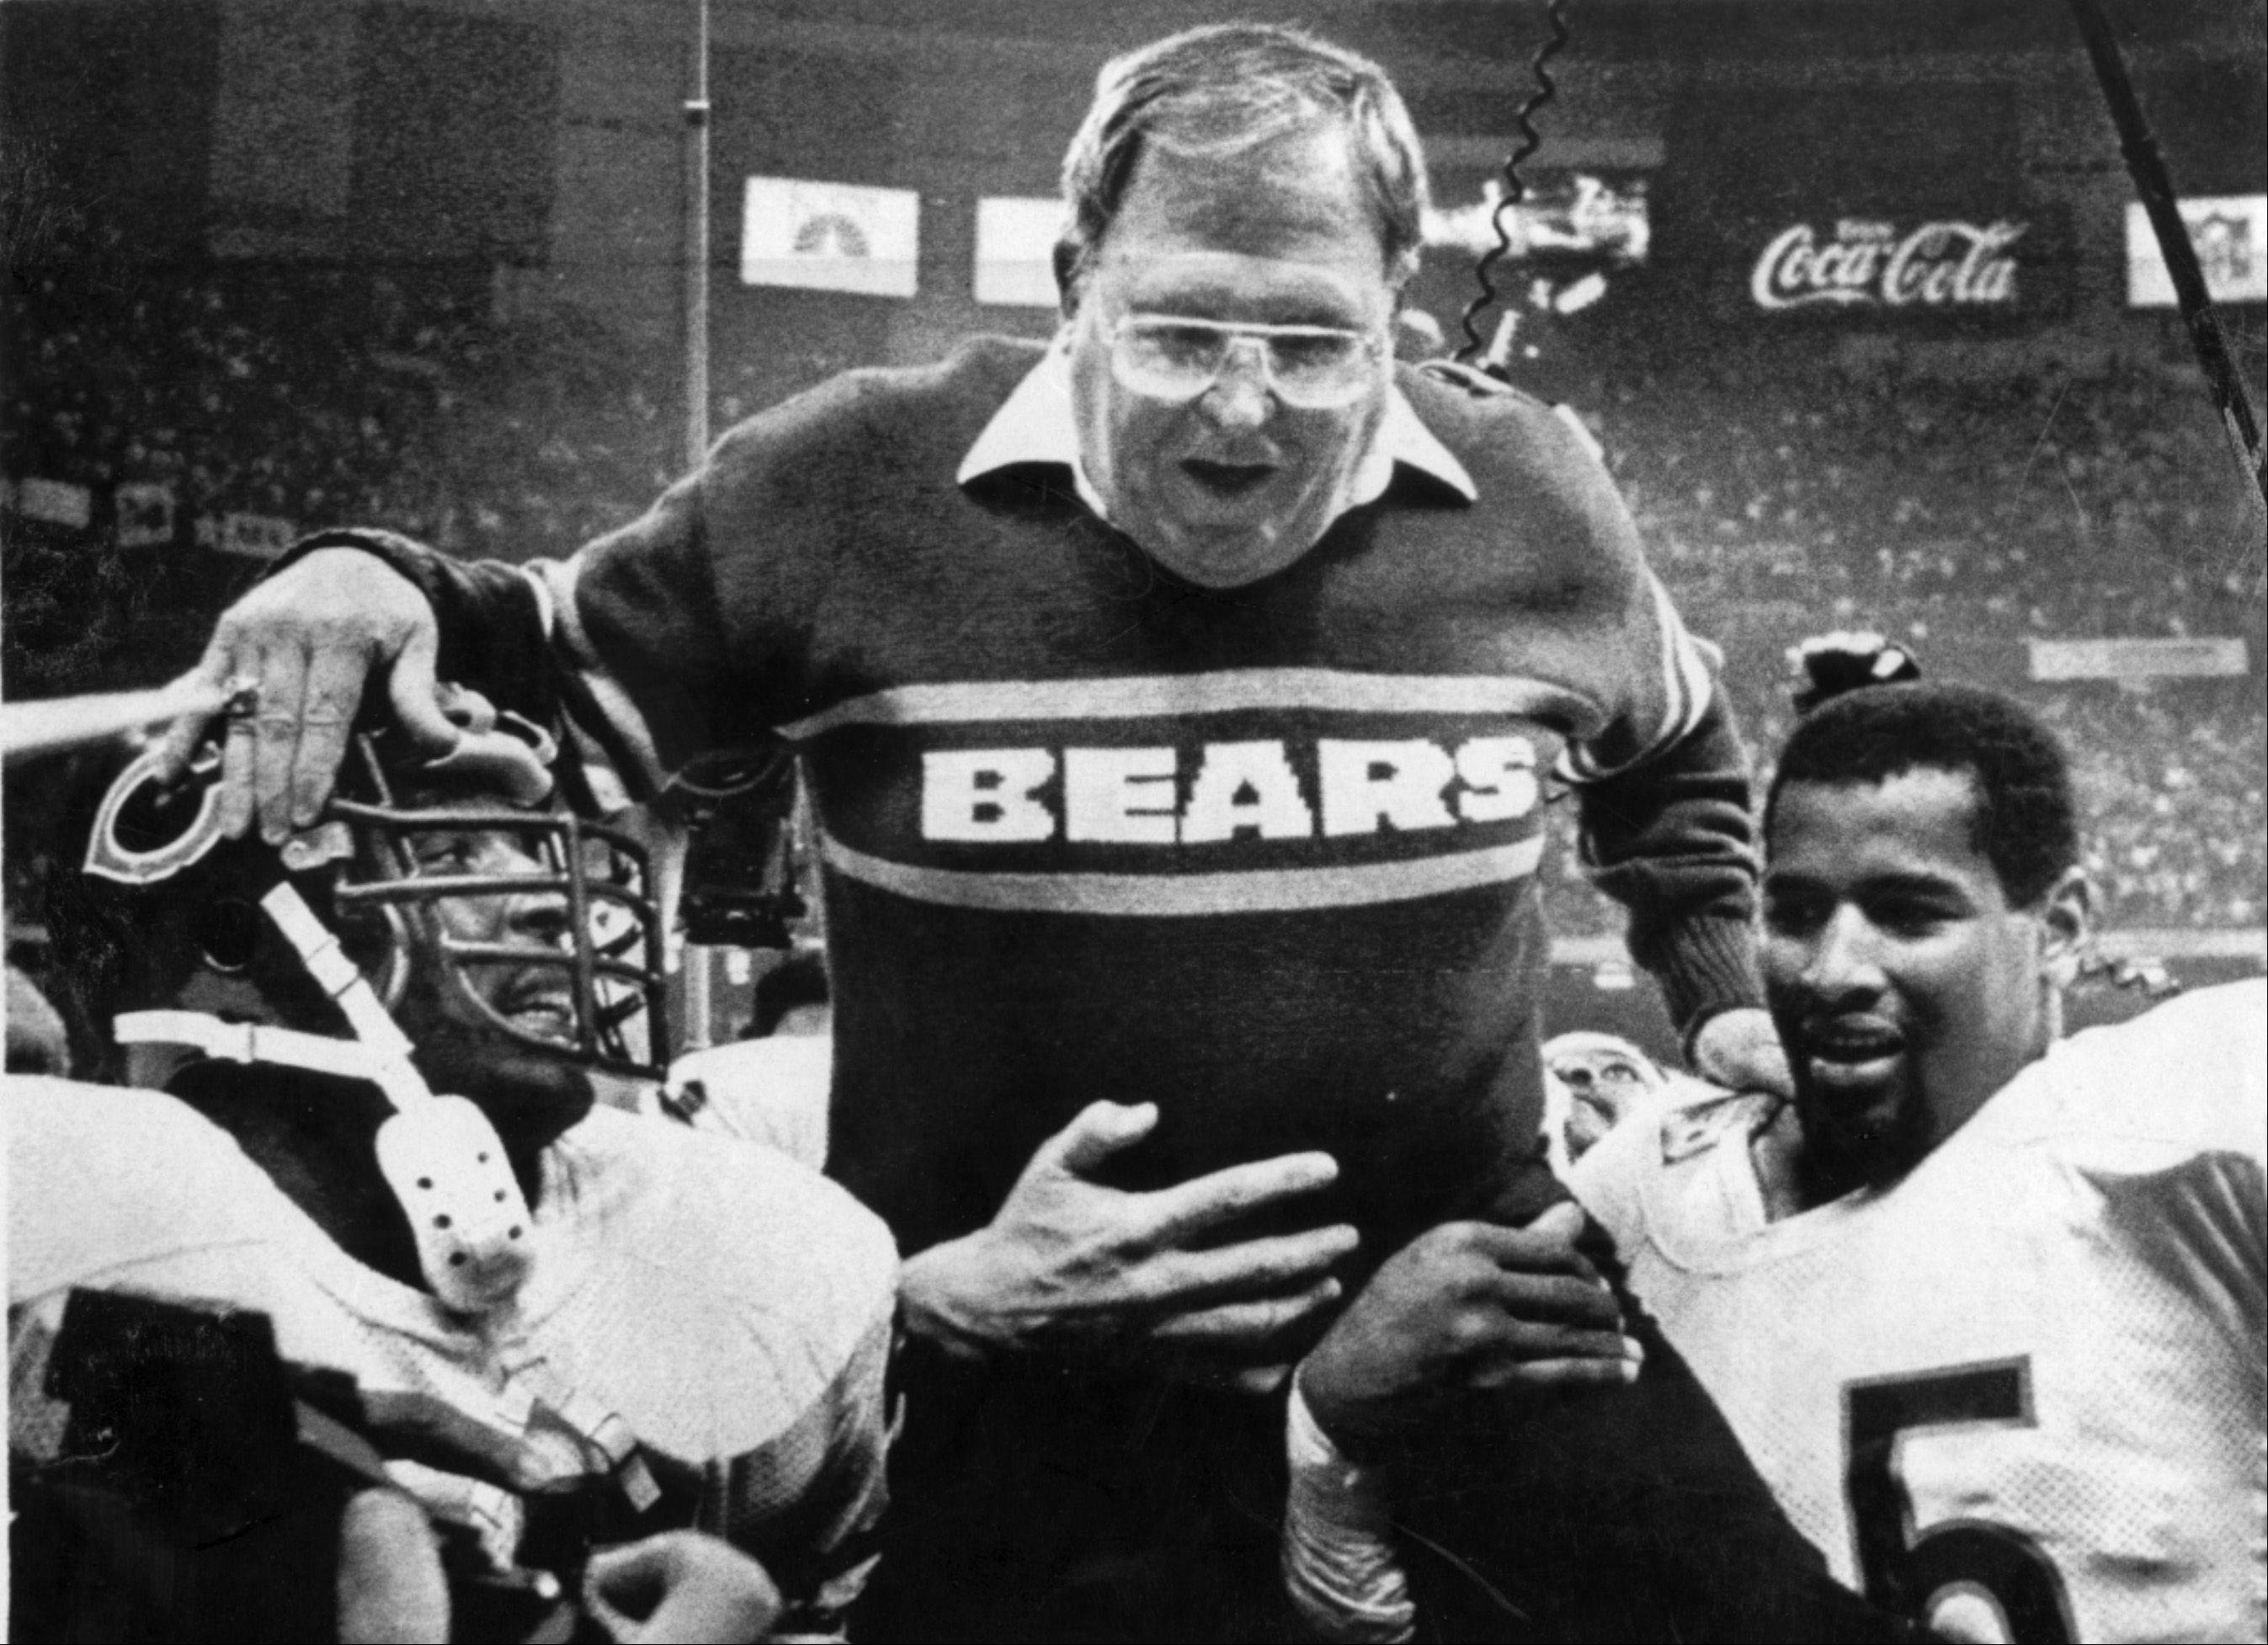 Chicago Bears defensive coordinator Buddy Ryan is hoisted on the shoulders of Otis Wilson, left, and Richard Dent, right, after the Bears� lopsided 46-10 victory over the New England Patriots in Super Bowl XX in 1986.